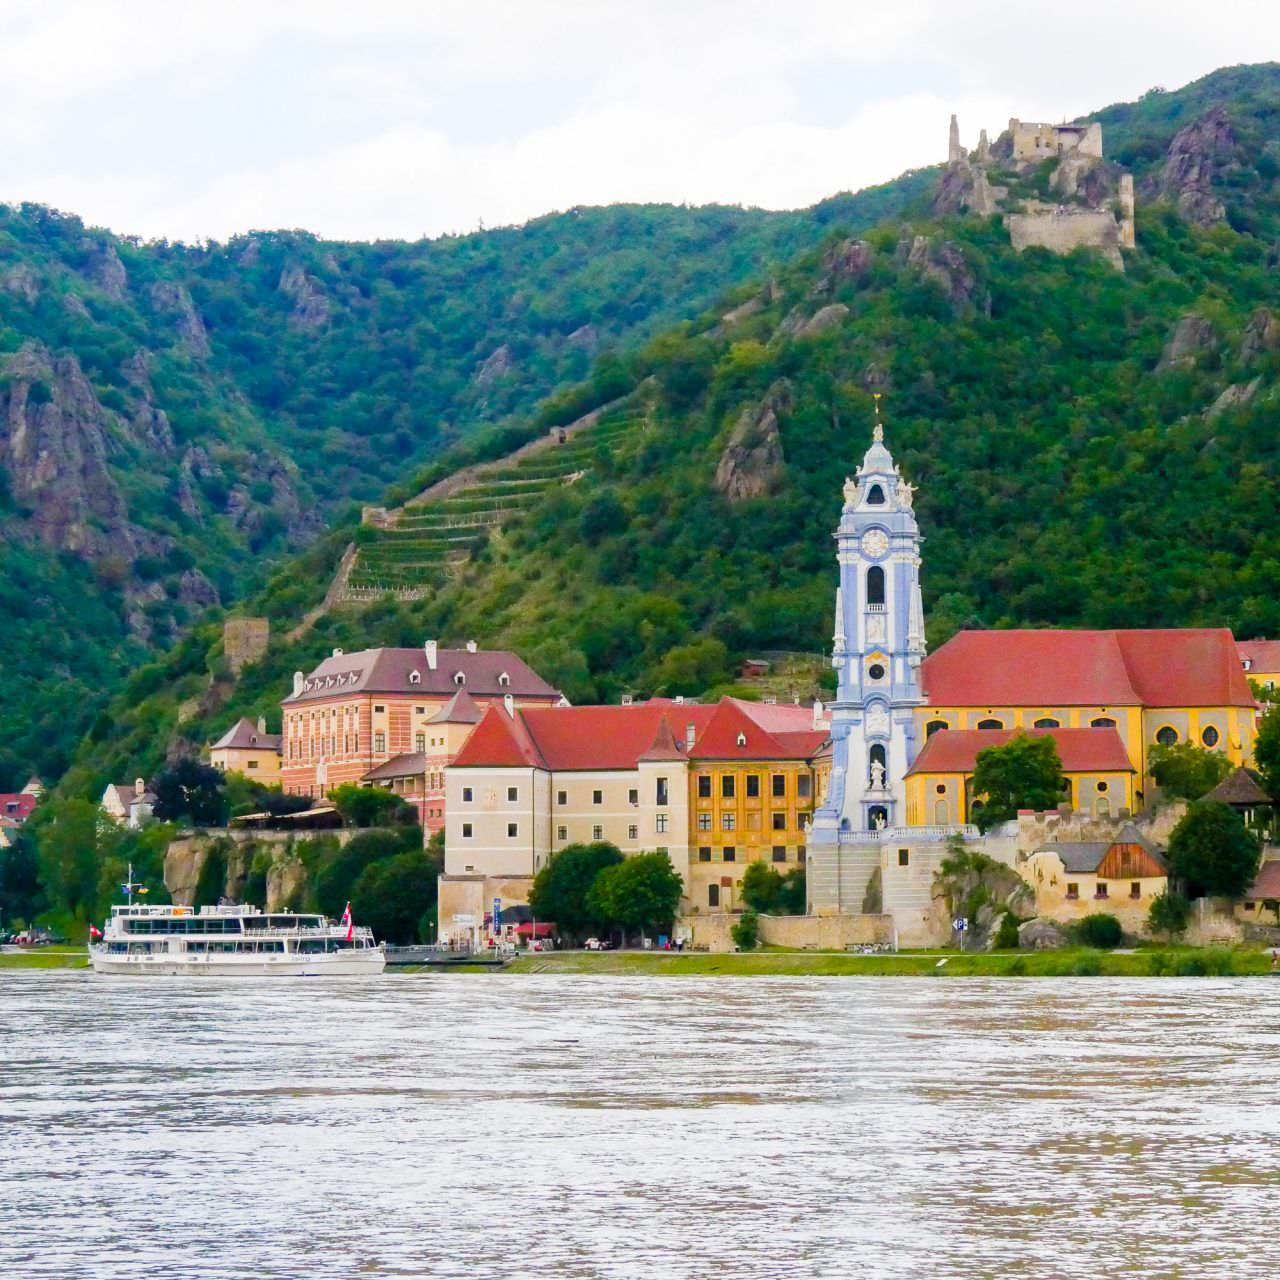 Our Wachau Valley ride took us to Durnstein. © 2016 Ralph Grizzle